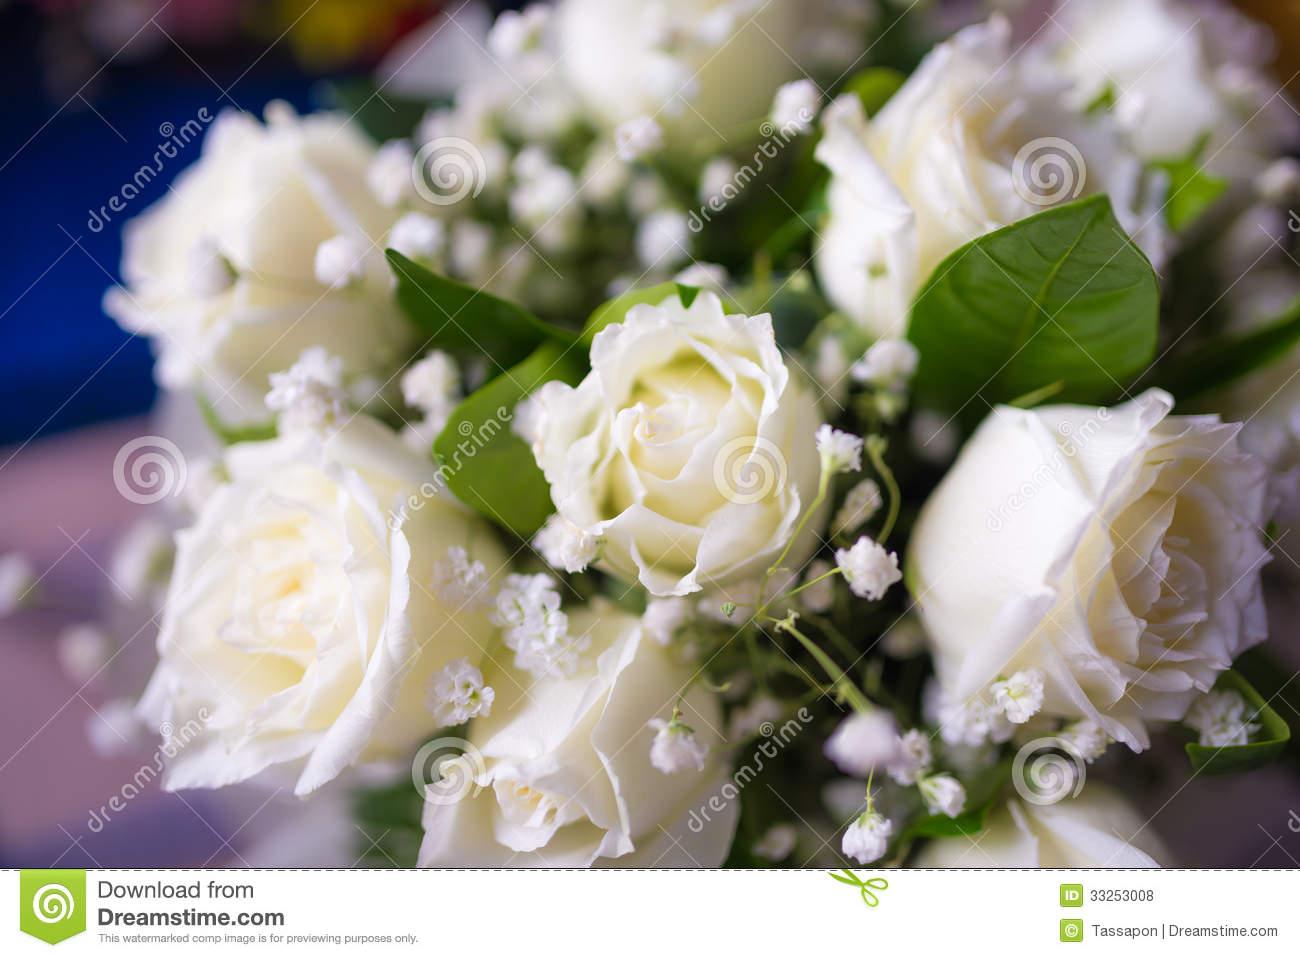 Bouquet Of White Rose Flowers Stock Photo 33253008 Megapixl